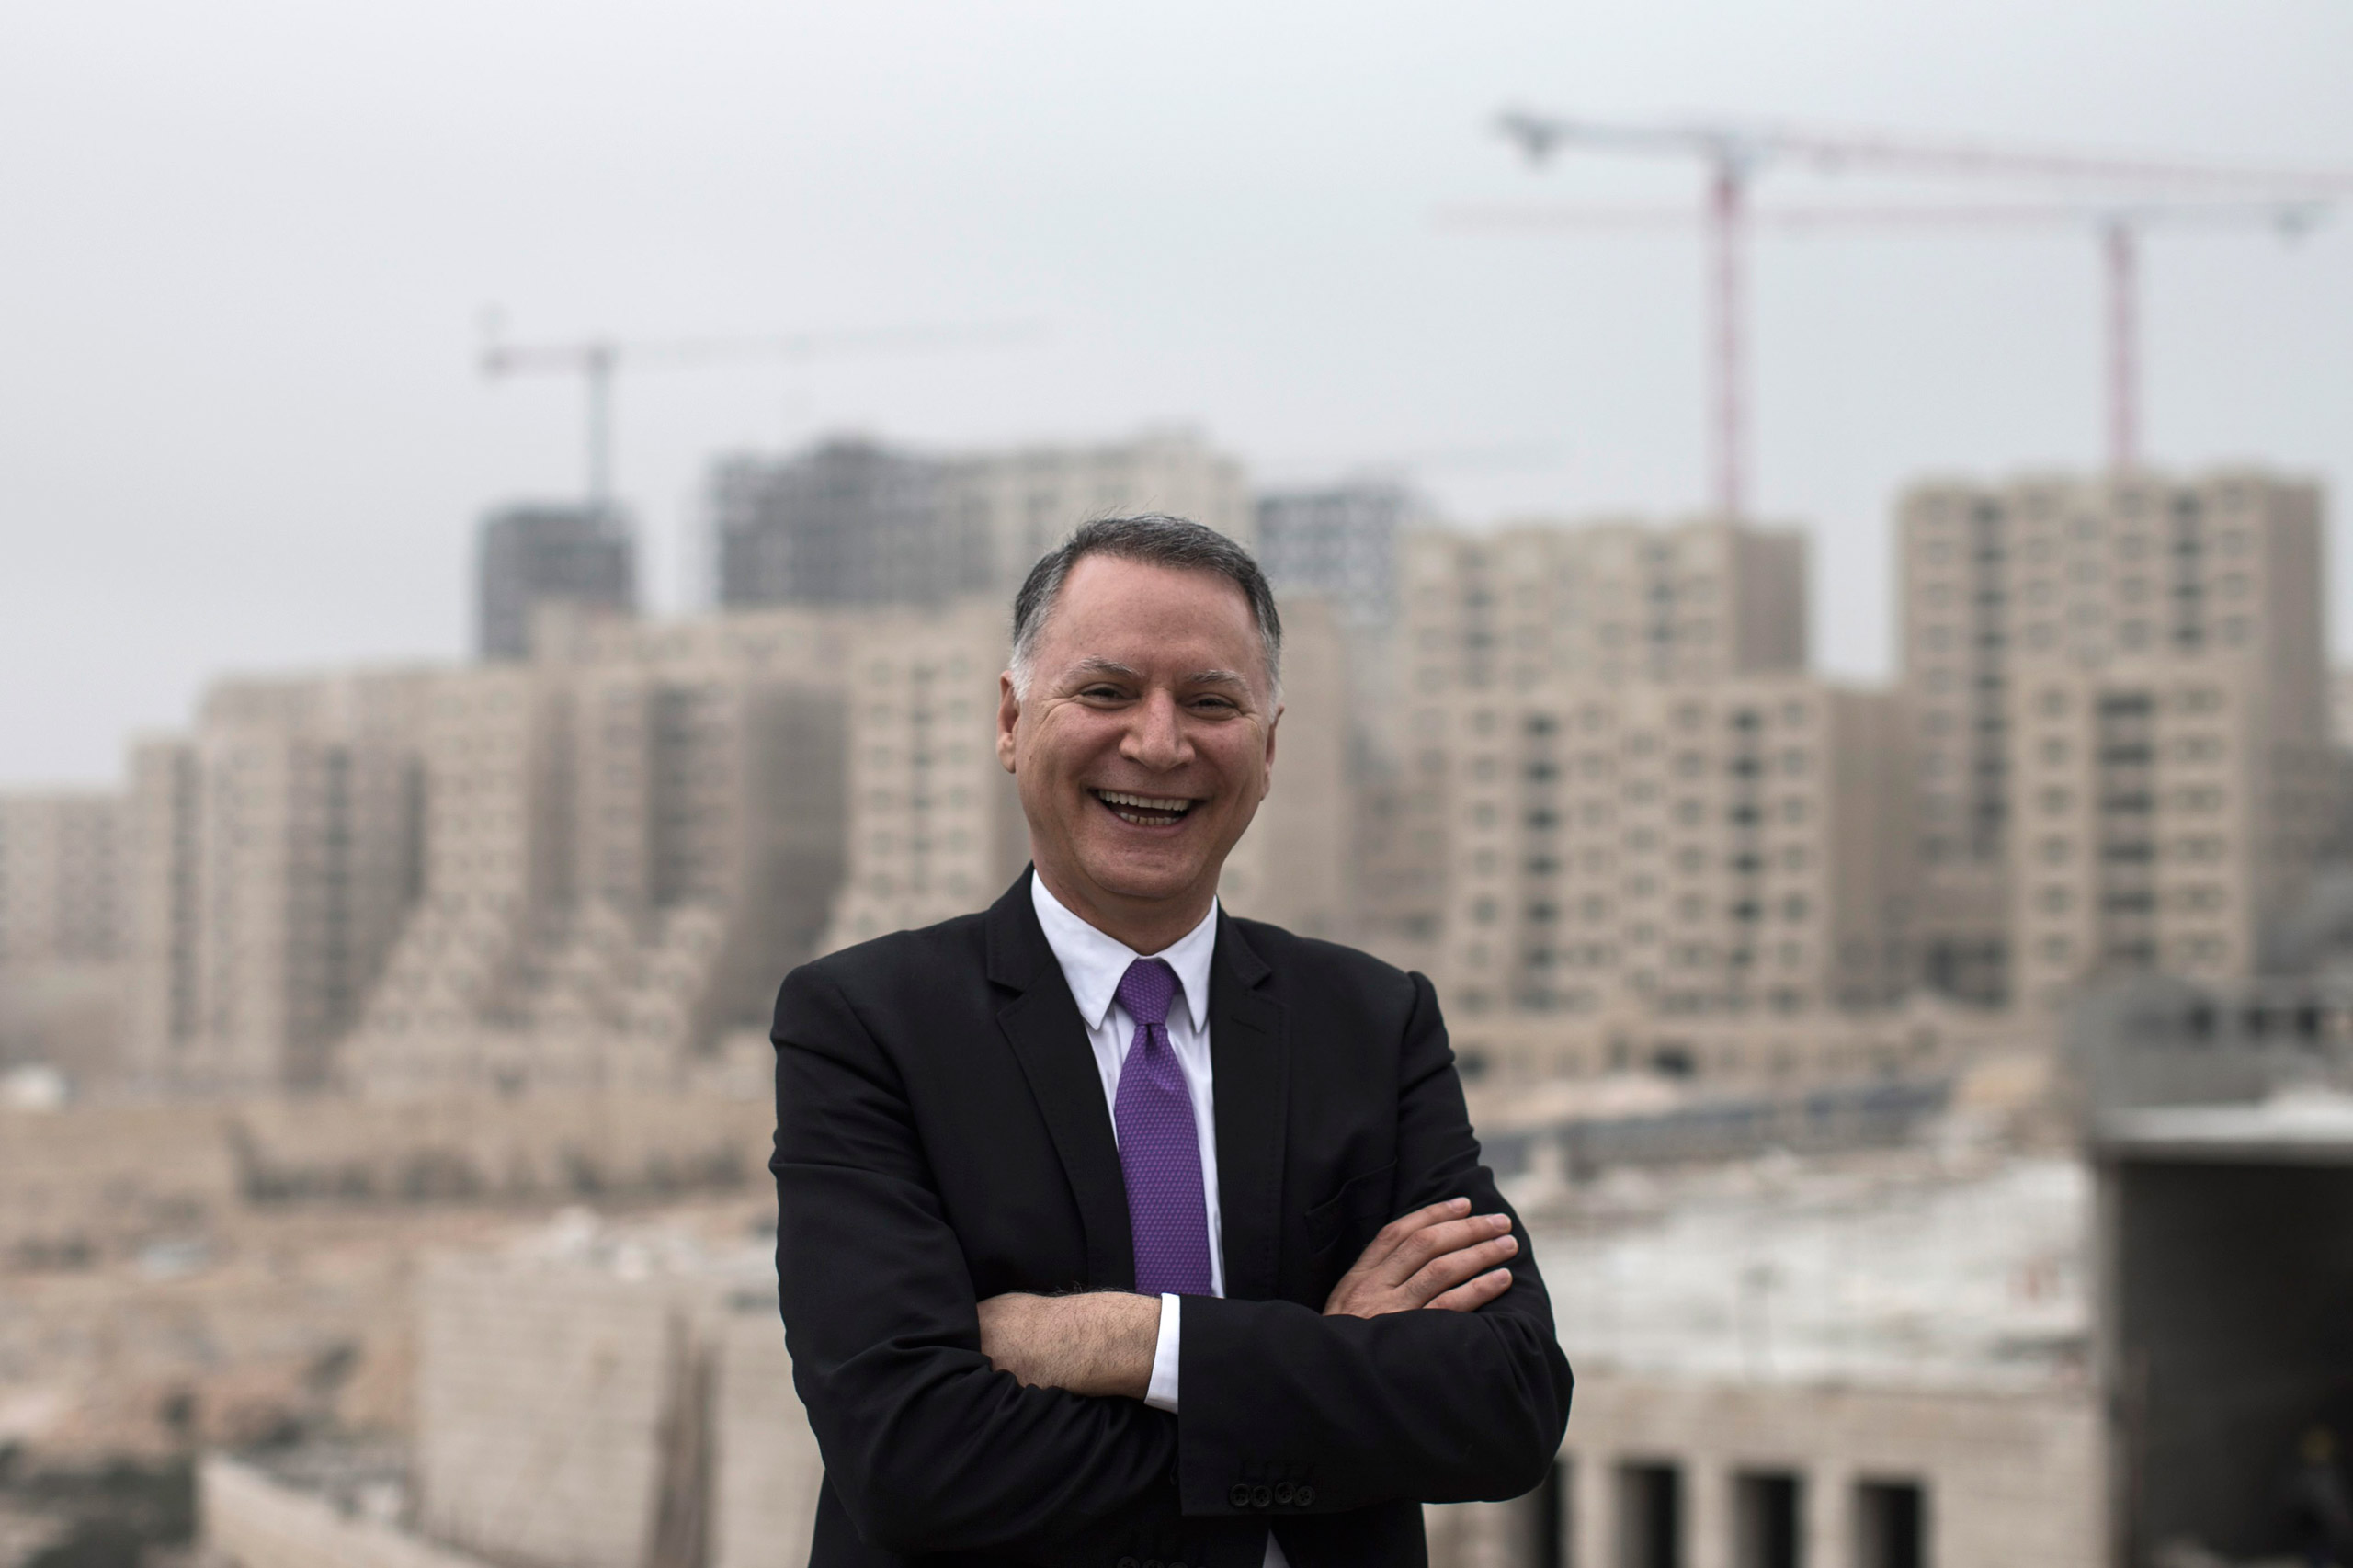 Bashar Masri, main investor of the new Palestinian city of Rawabi, in front of an apartment building under construction in Rawabi, West Bank, on Feb. 24, 2014.